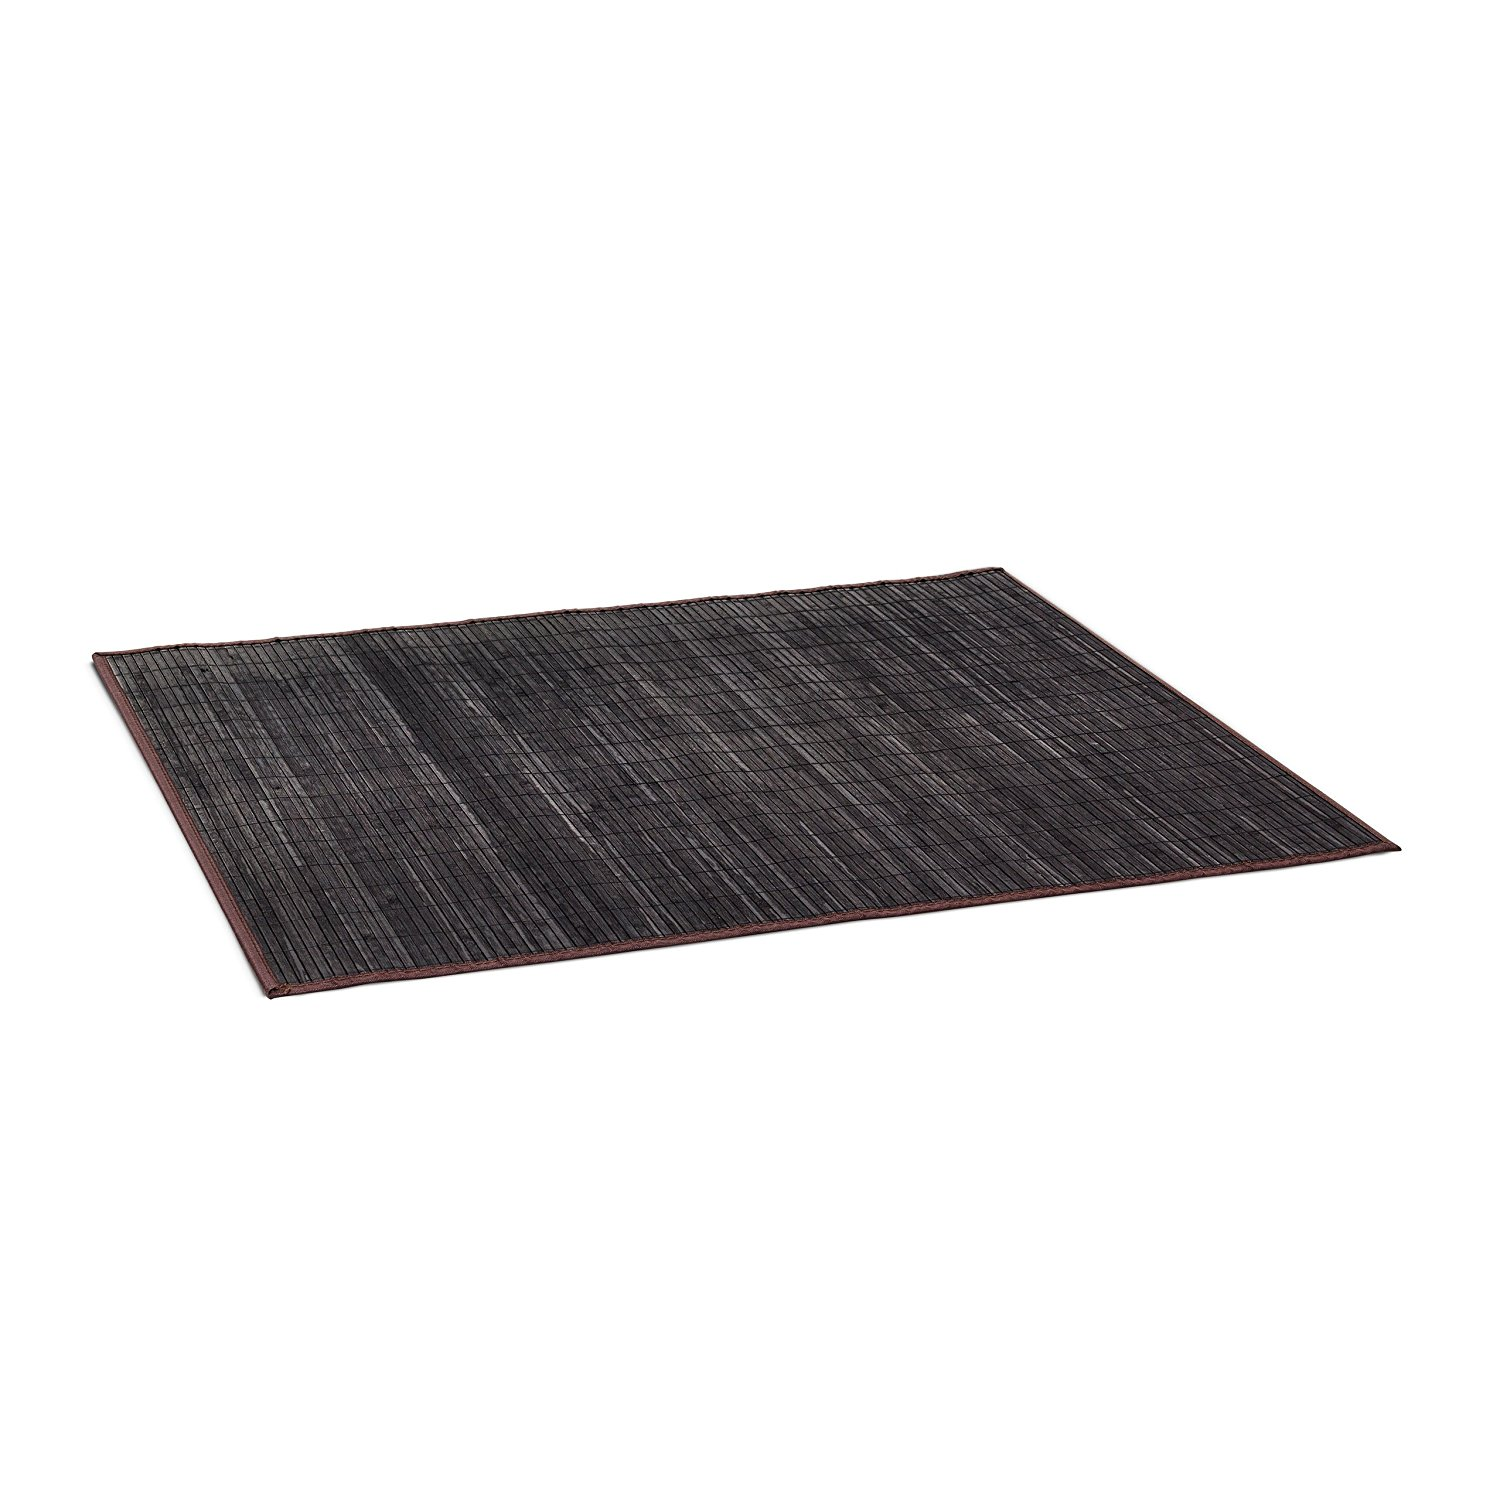 Relaxdays Bamboo Bath Mat 100 x 80 cm Bathroom Mat of Wood with Anti-Slip Underside, Perfect for use as Bathtub Mat or Shower Mat, Black